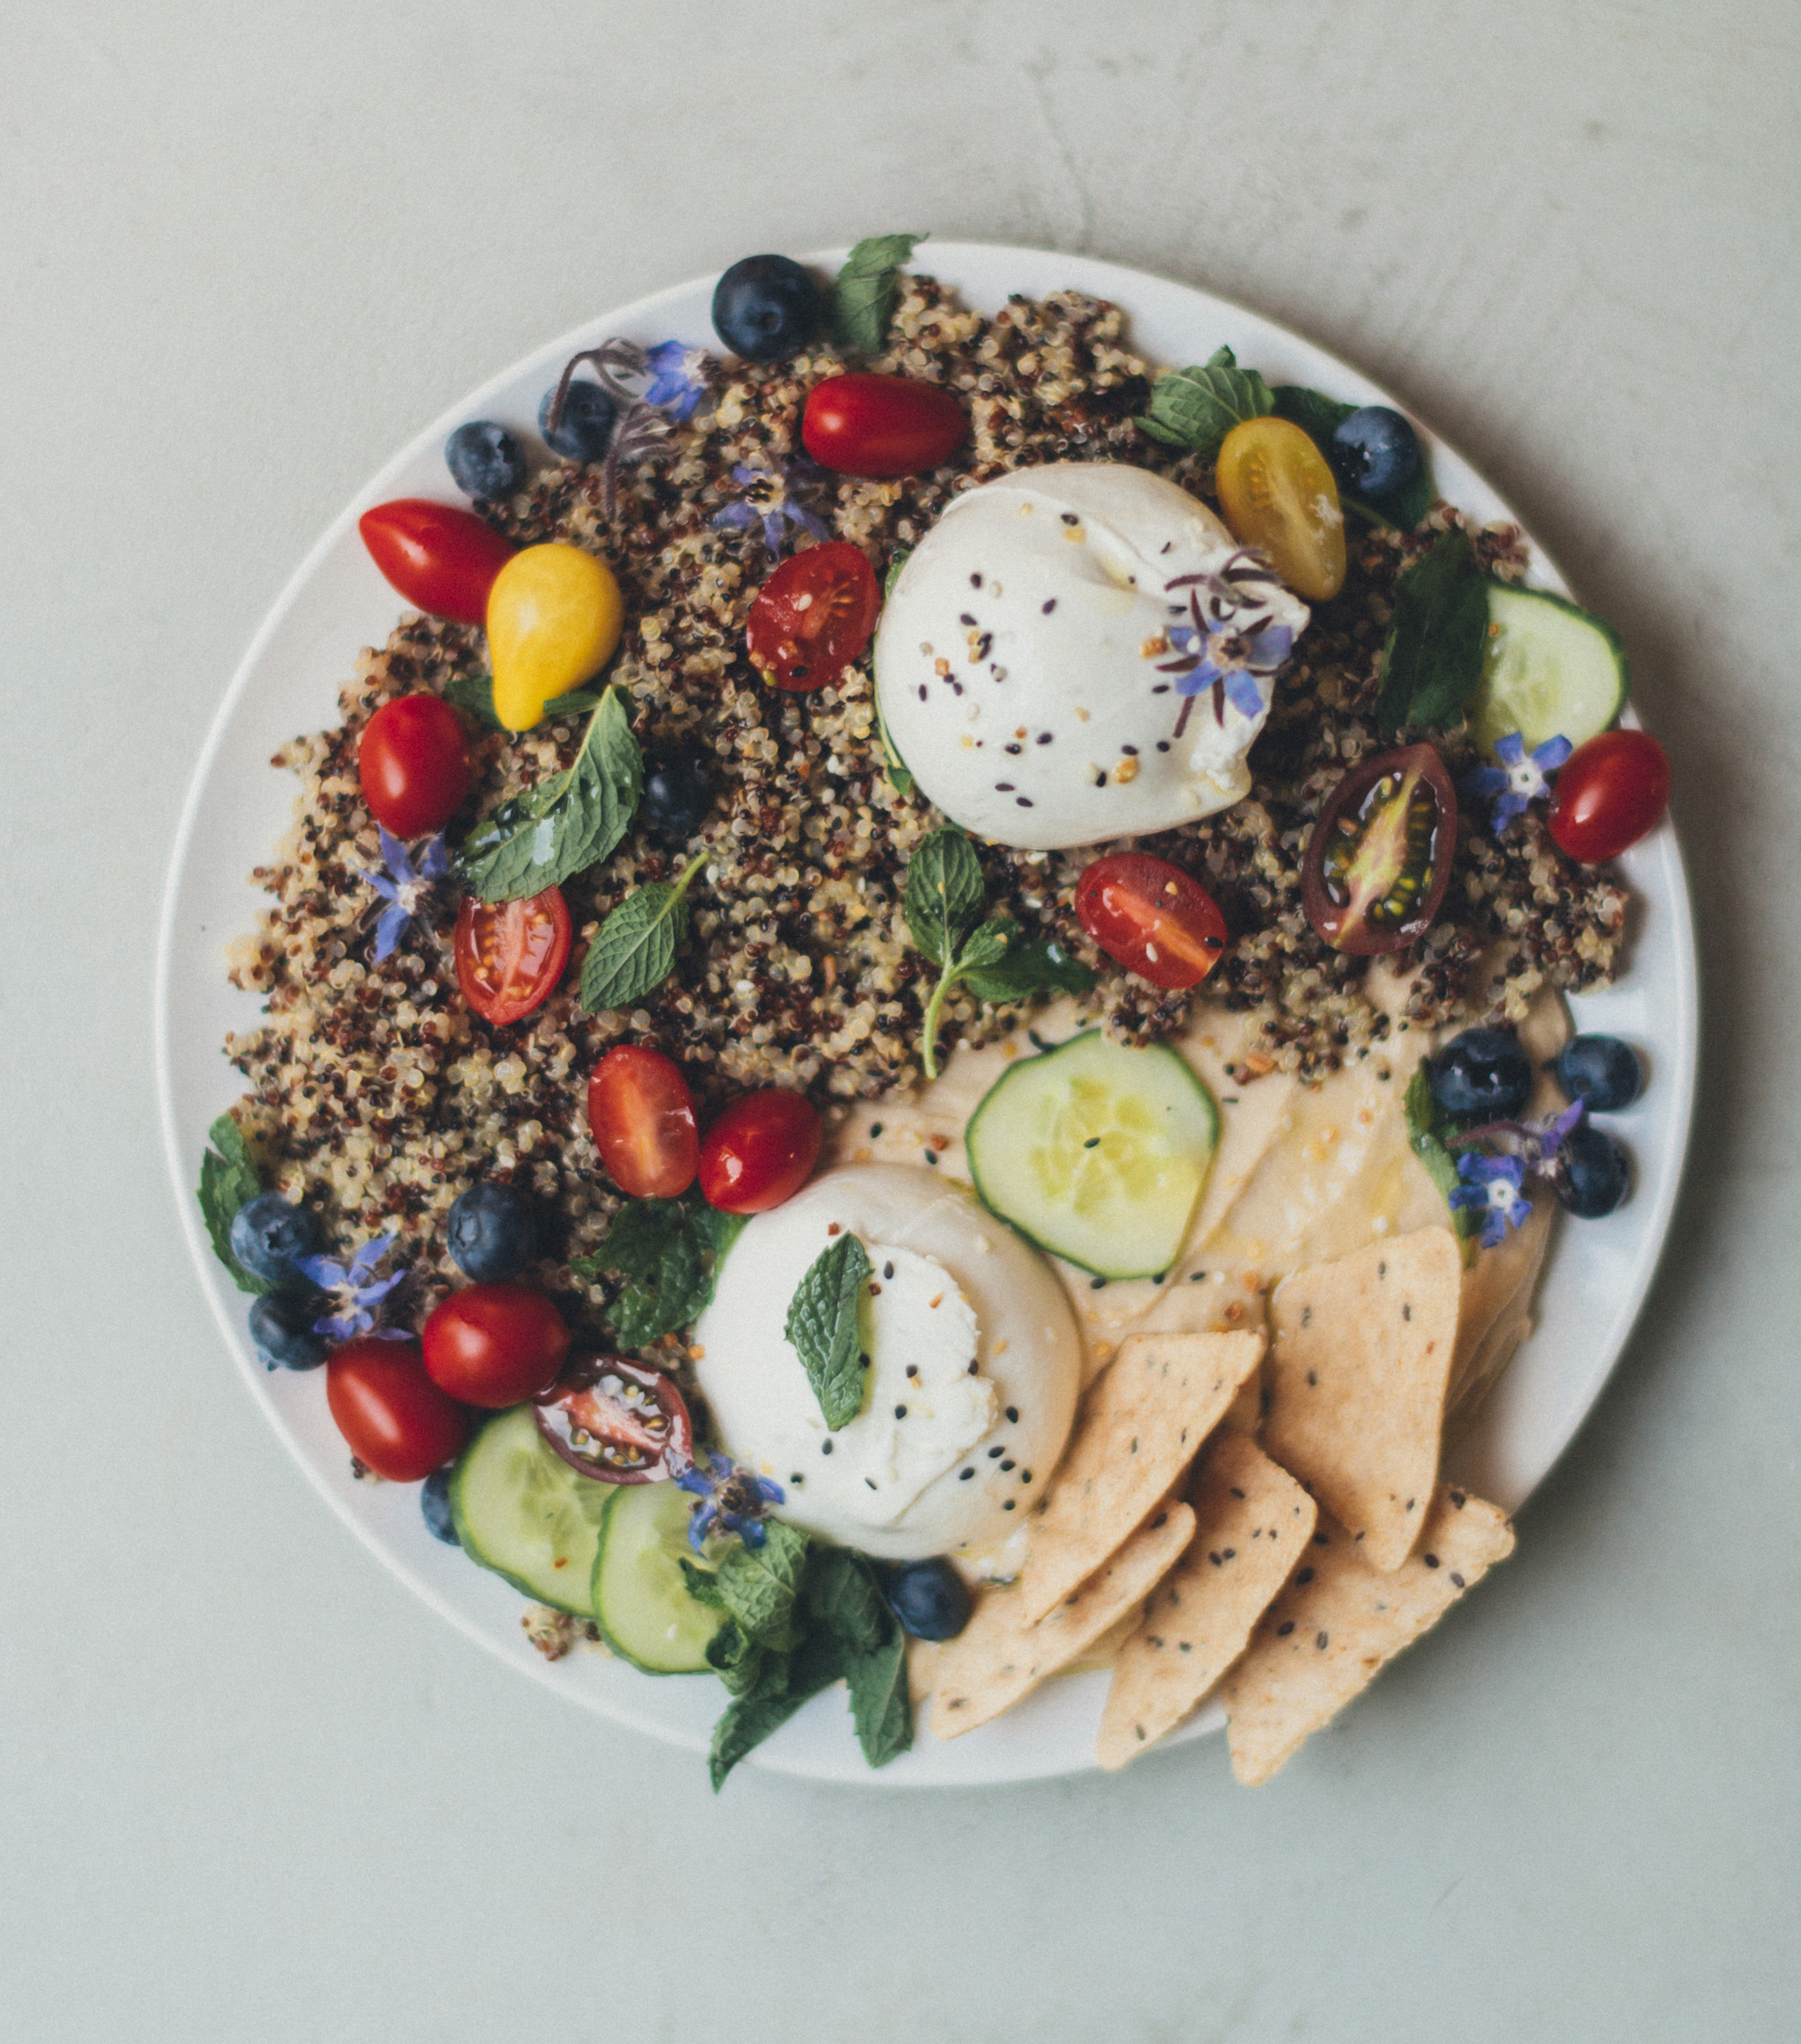 Quinoa, hummus, and burrata prepared by Kara Elise